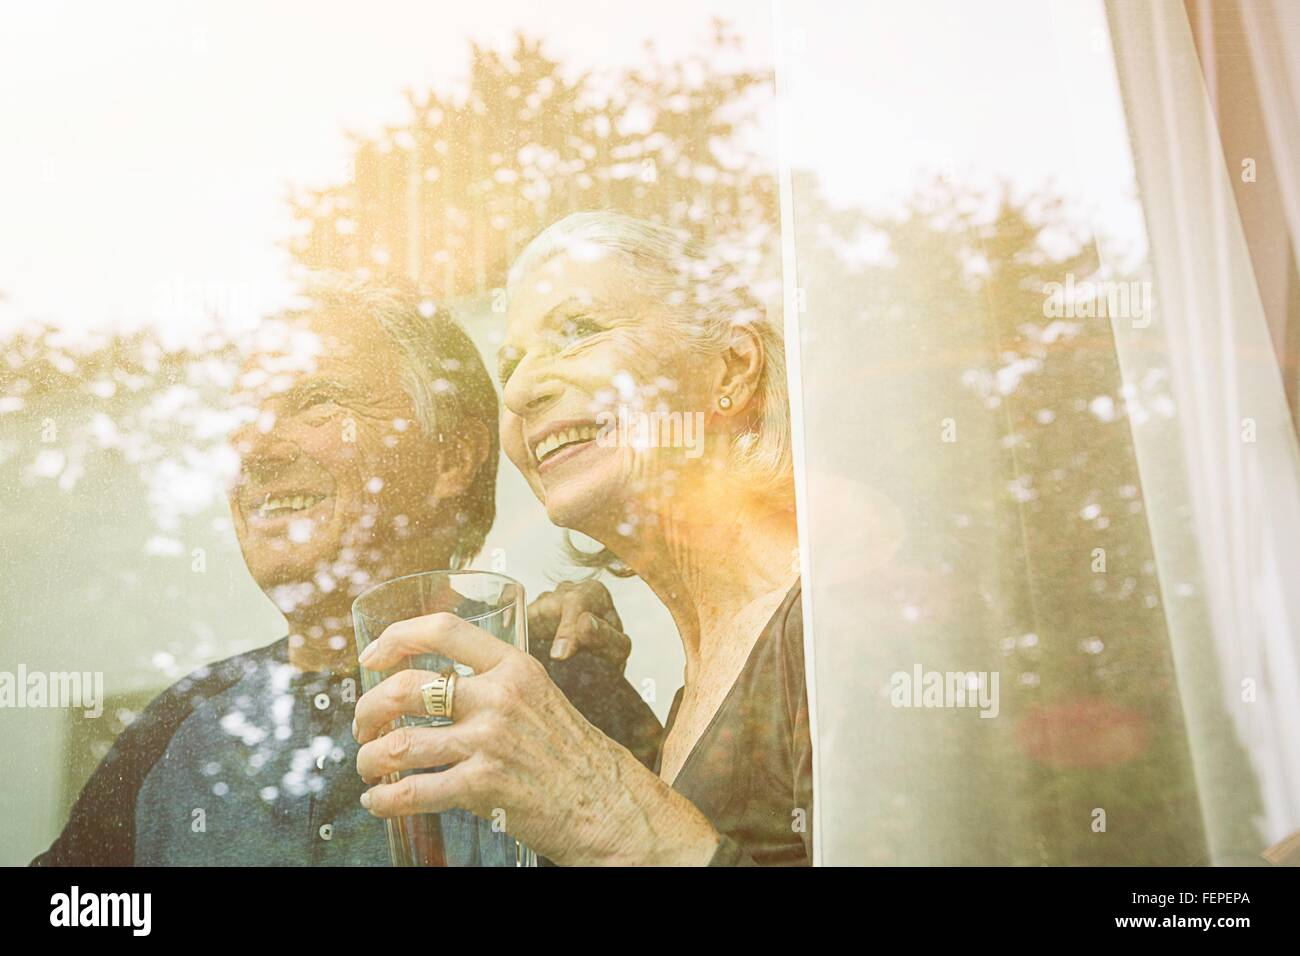 View through window of senior couple holding tumbler looking away smiling - Stock Image